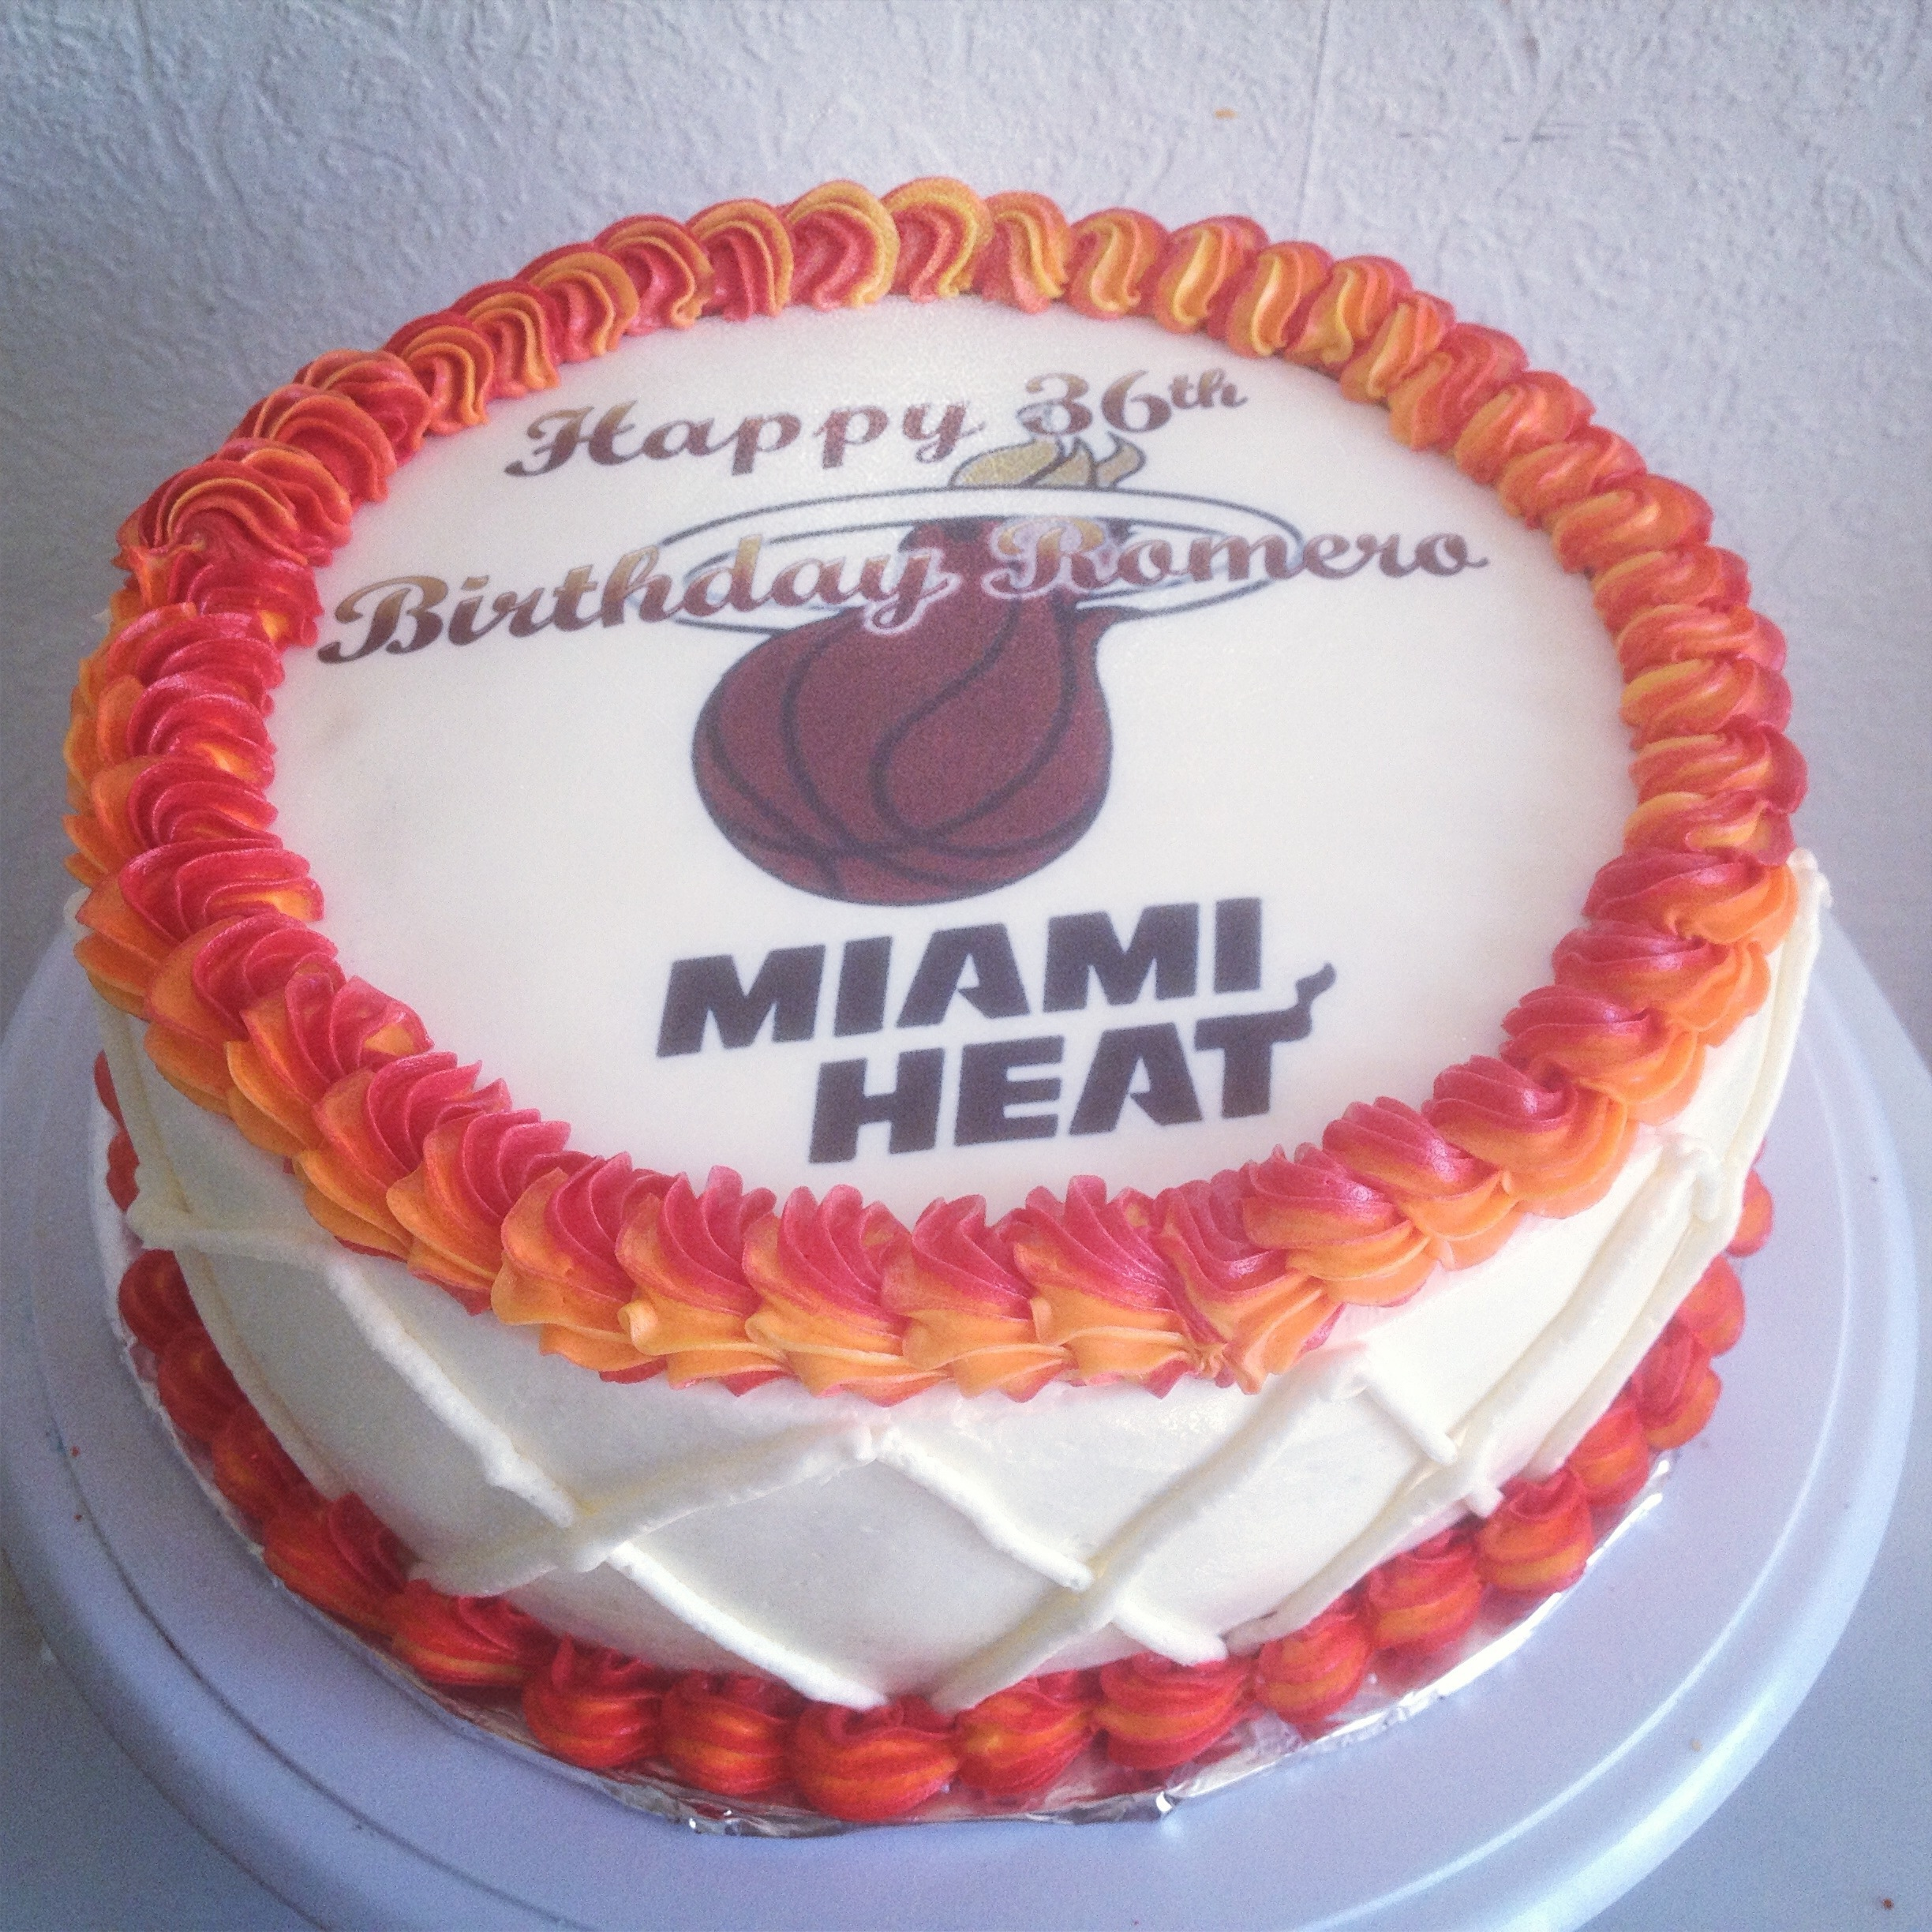 Pleasing Miami Heat Birthday Cake Twincupcakery Funny Birthday Cards Online Alyptdamsfinfo